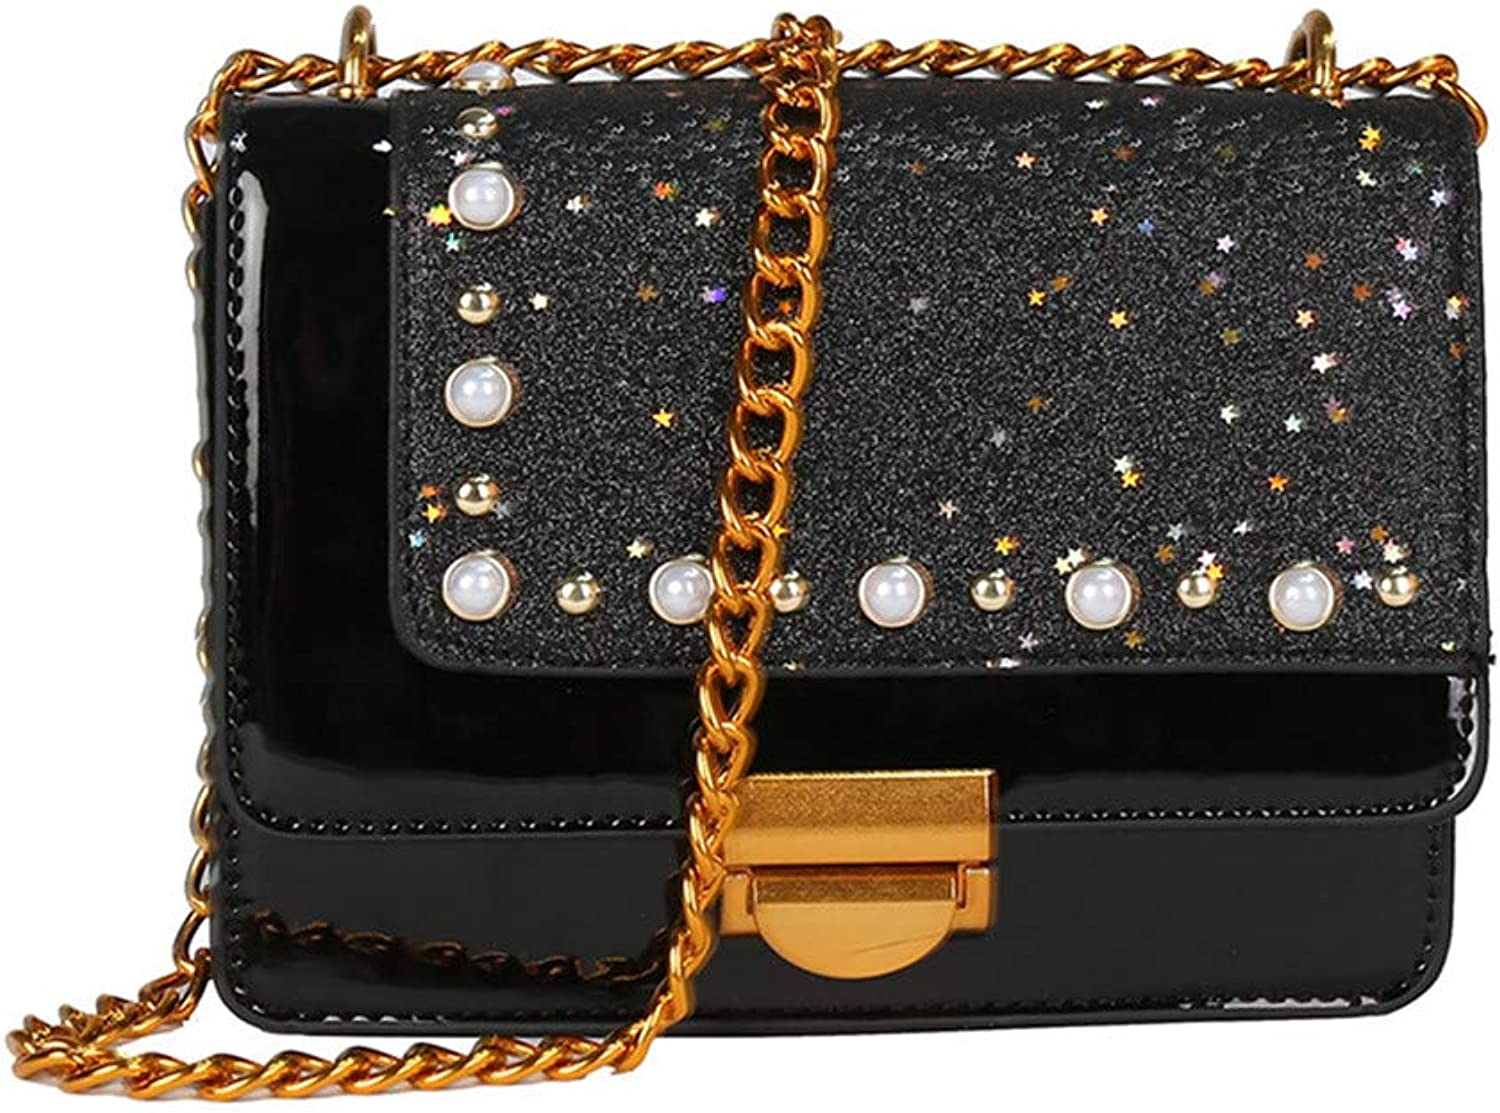 Sturdy Casual Chain Patent Leather Sequins Small Square Handbag Bright Leather Pearl Shoulder Handbag Large Capacity (color   Black)